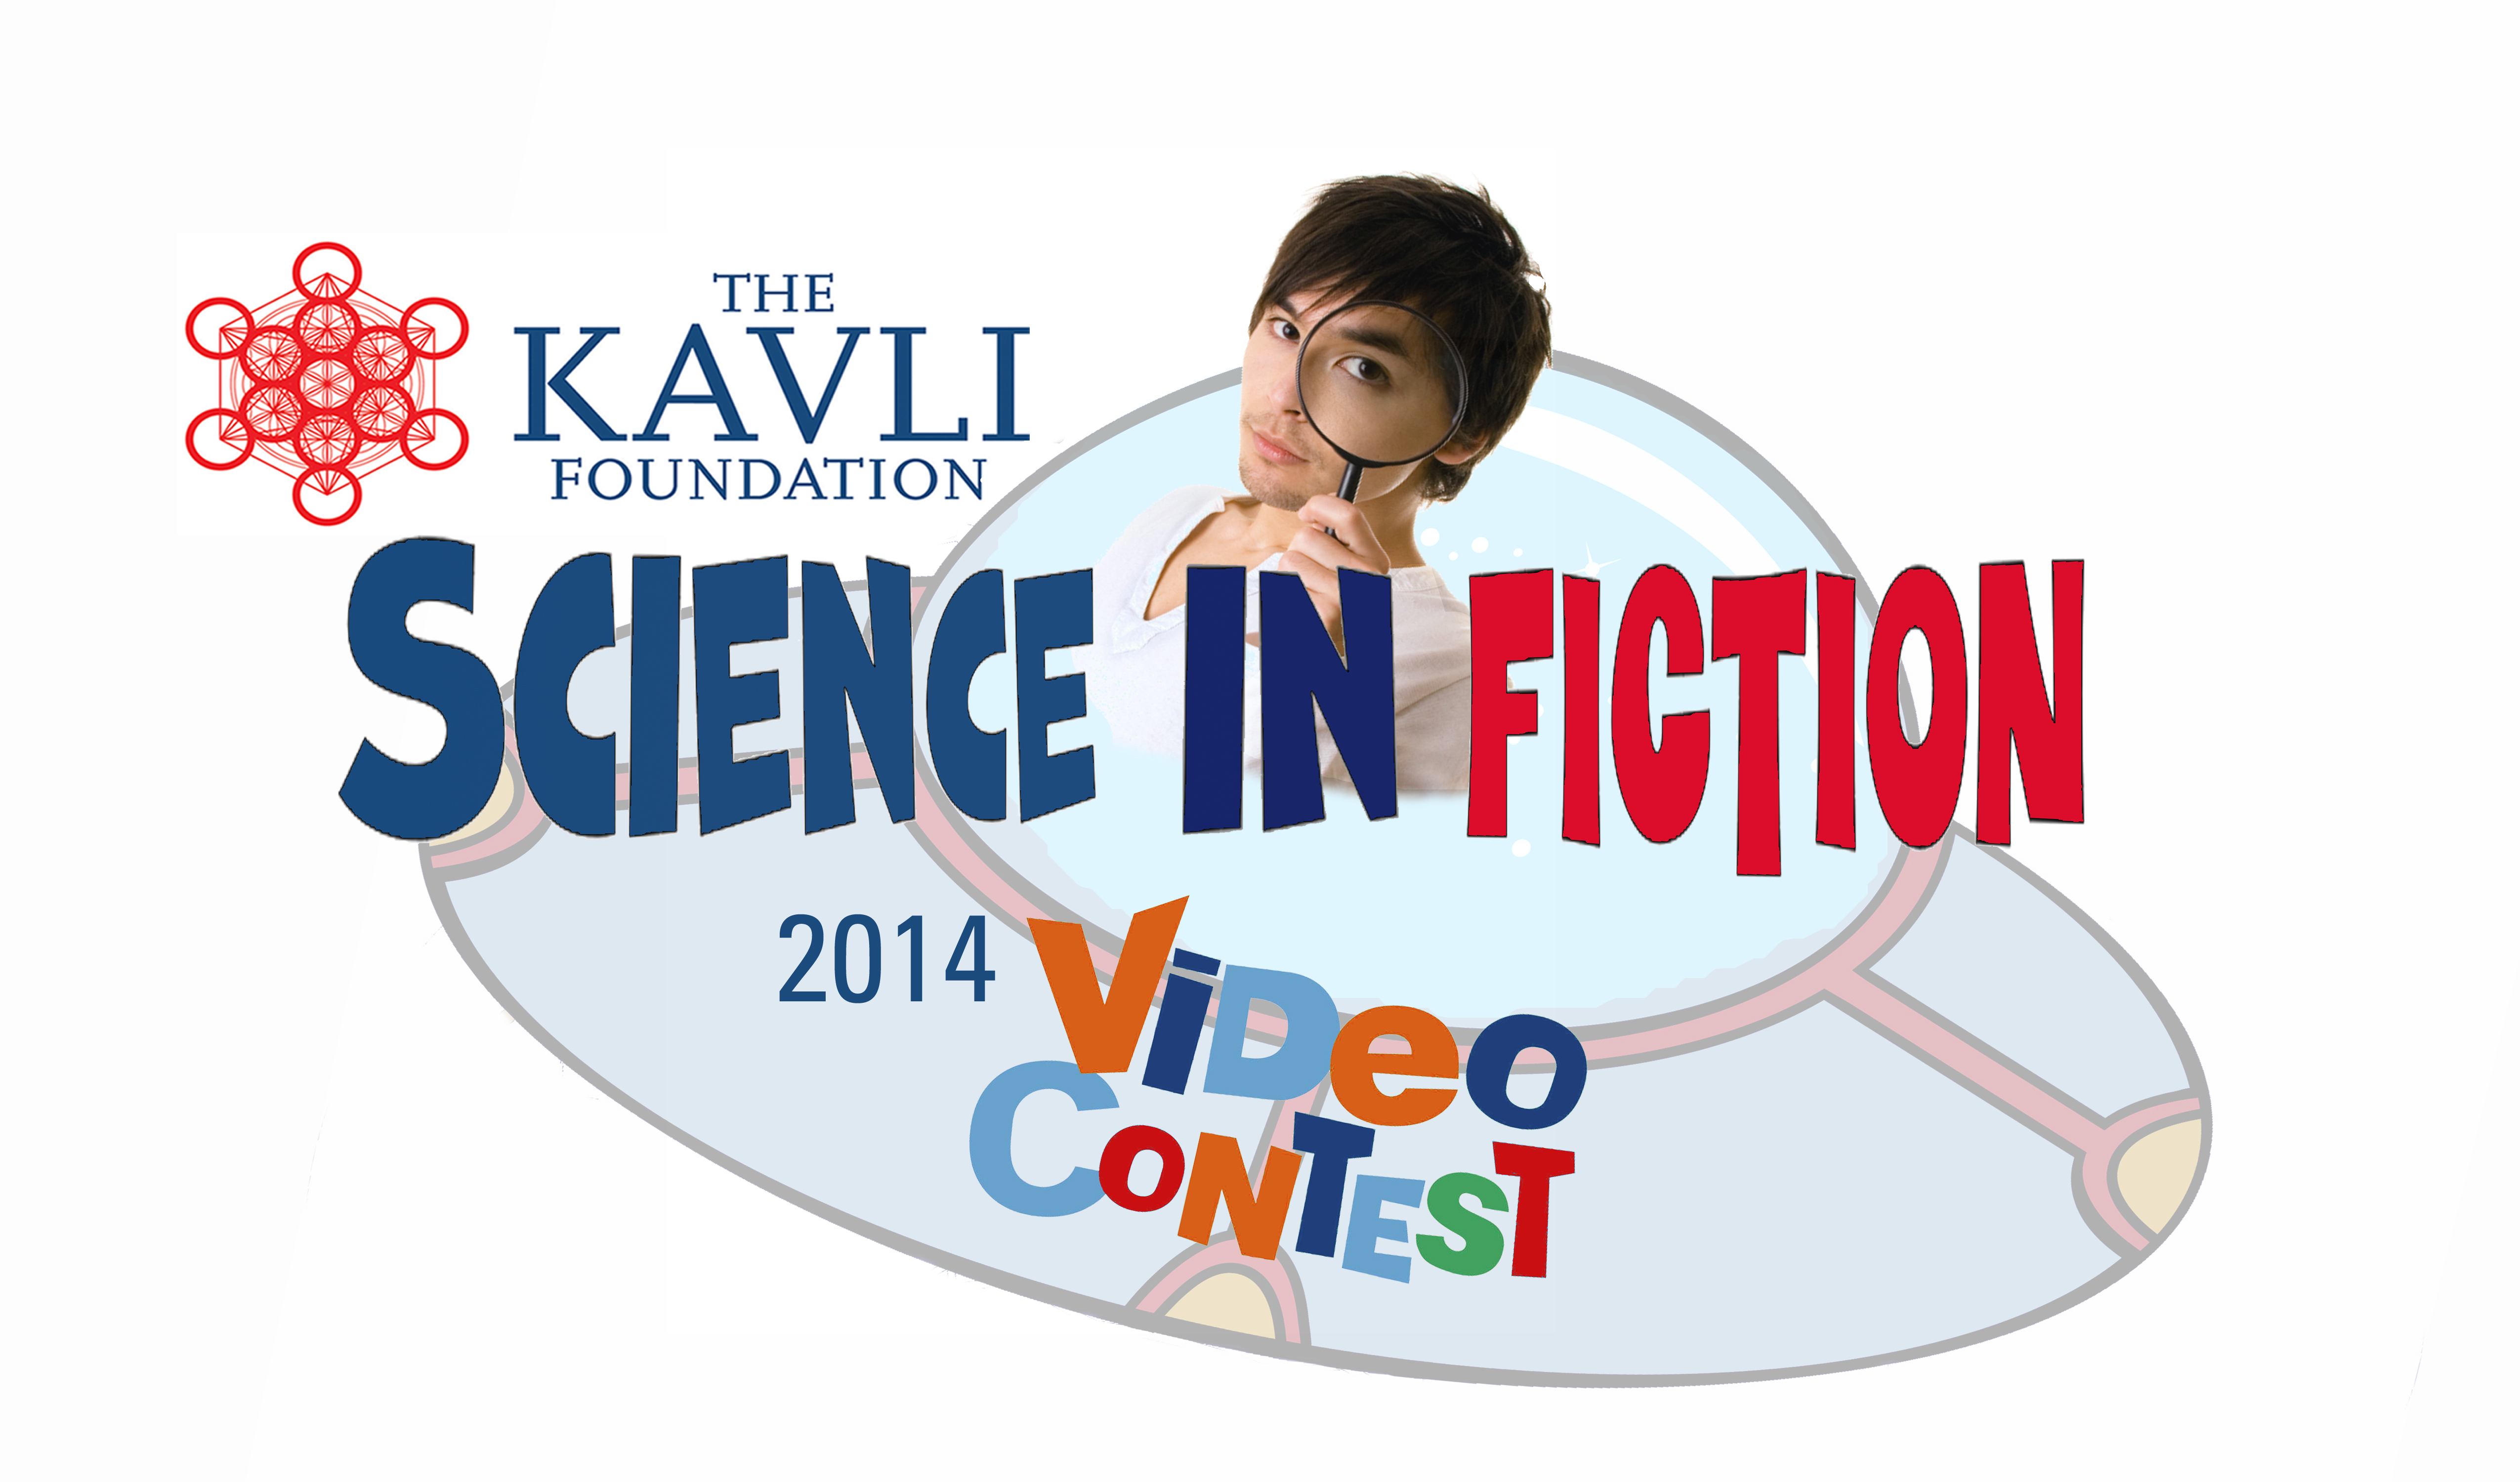 Kavli science video contest